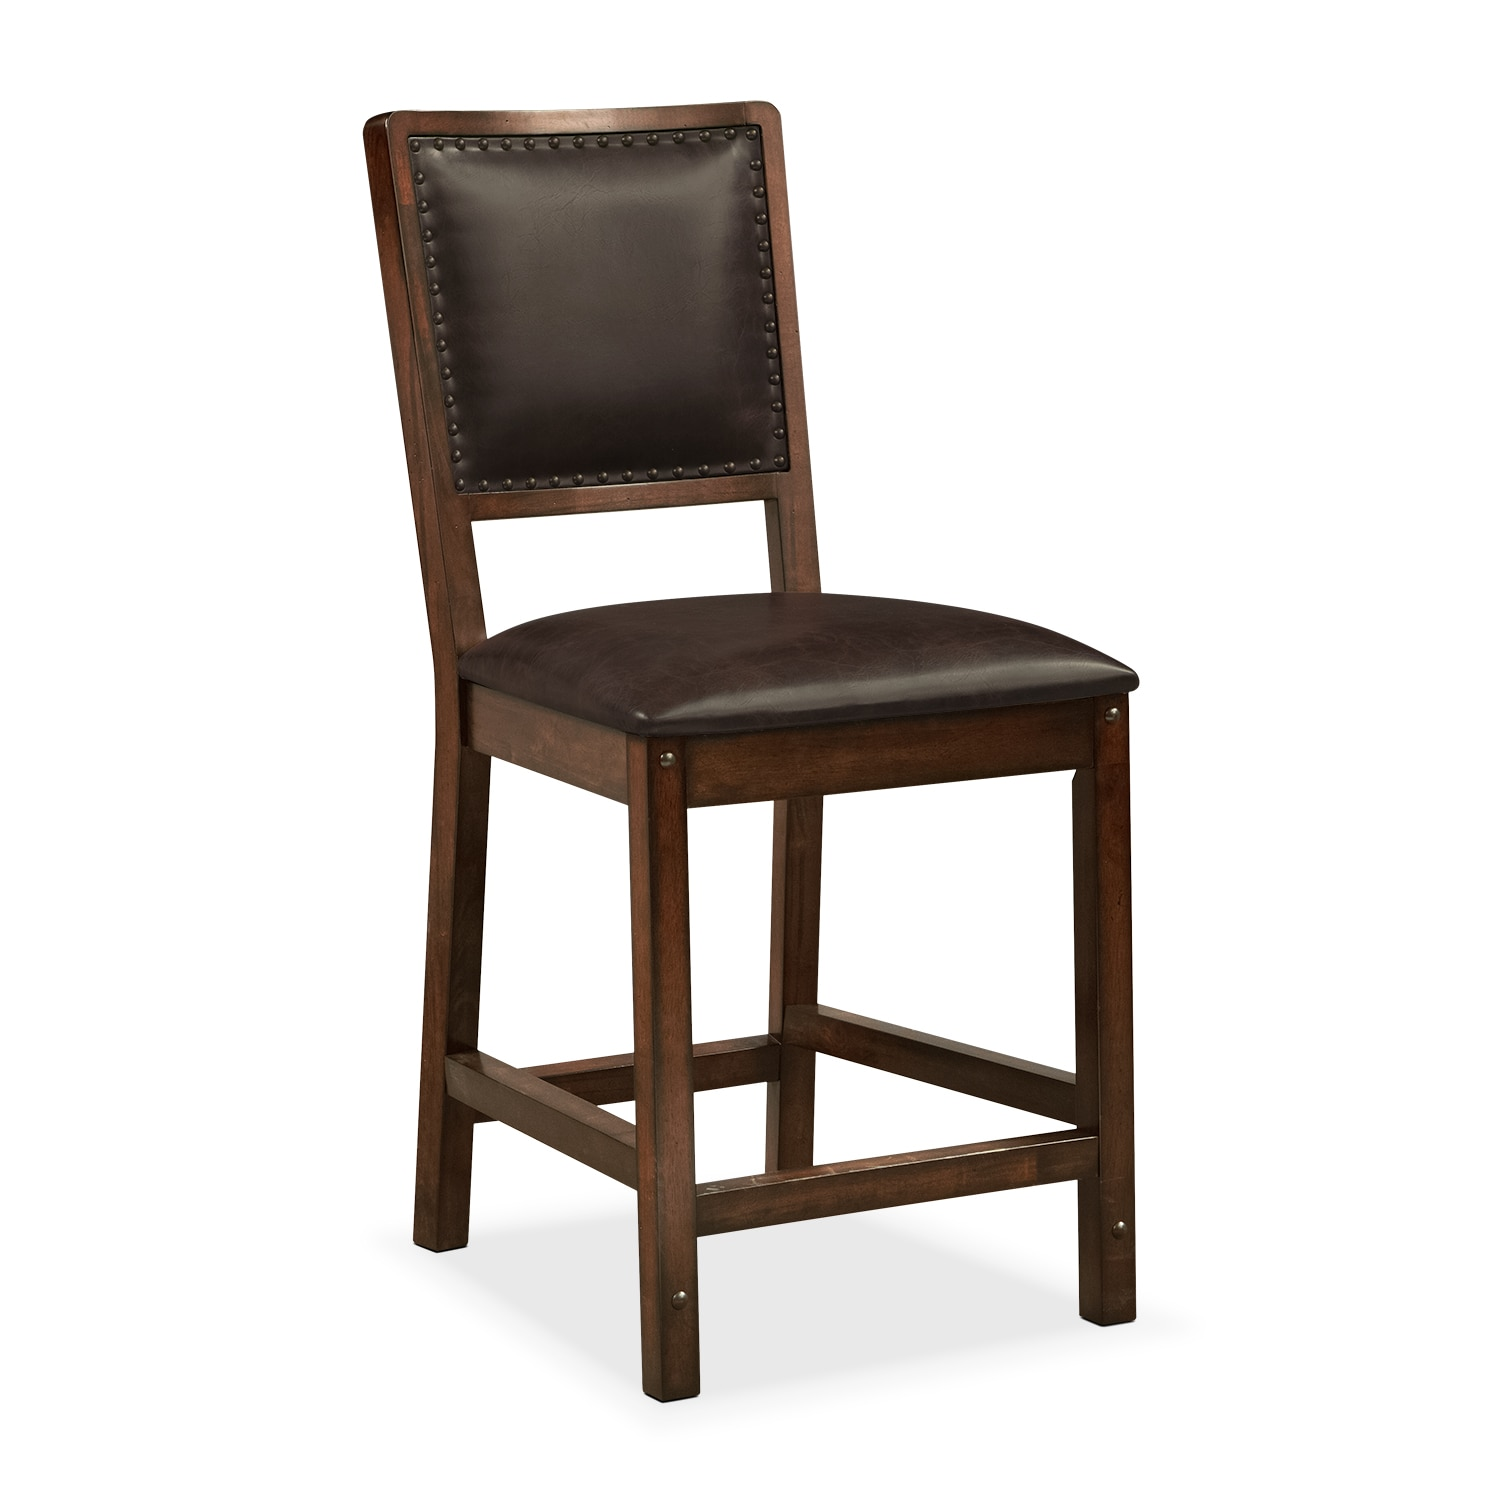 Dining Room Furniture - Newcastle Counter-Height Chair